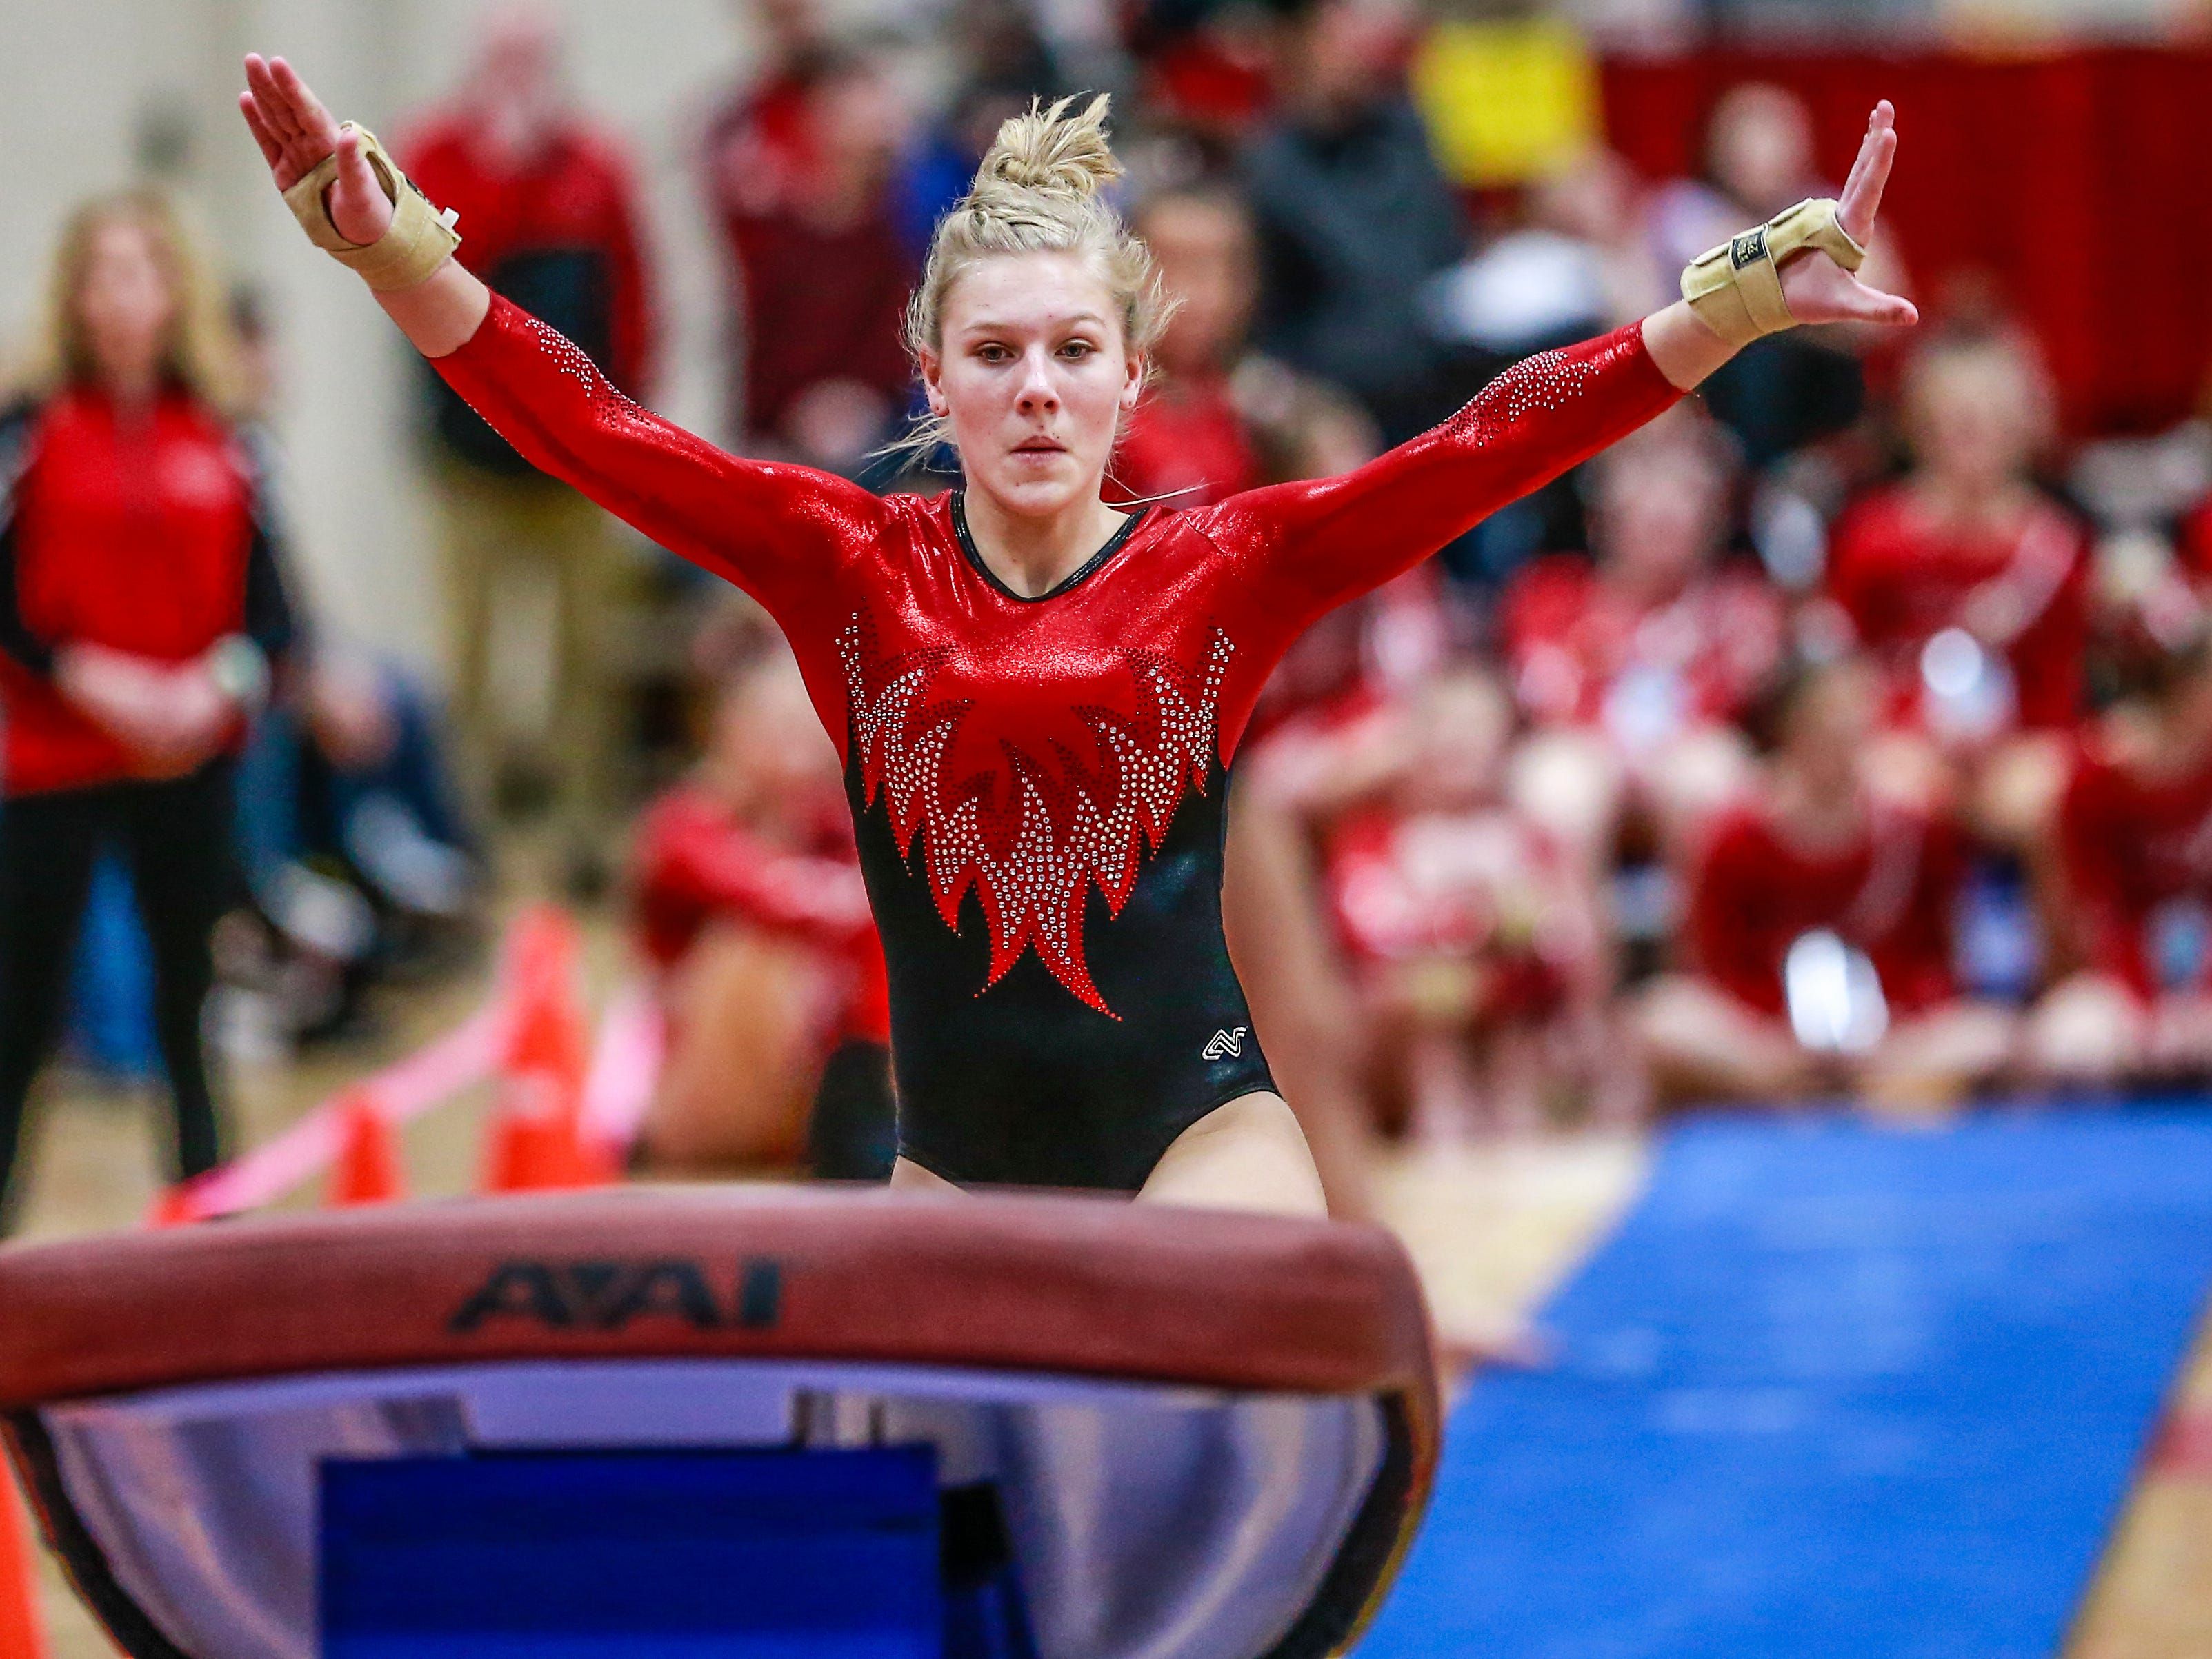 Medford's Brooklyn Bilz competes in the vaulting during WIAA state gymnastics competition Friday, March 1, 2019, at Lincoln High School Field House in Wisconsin Rapids, Wis. T'xer Zhon Kha/USA TODAY NETWORK-Wisconsin